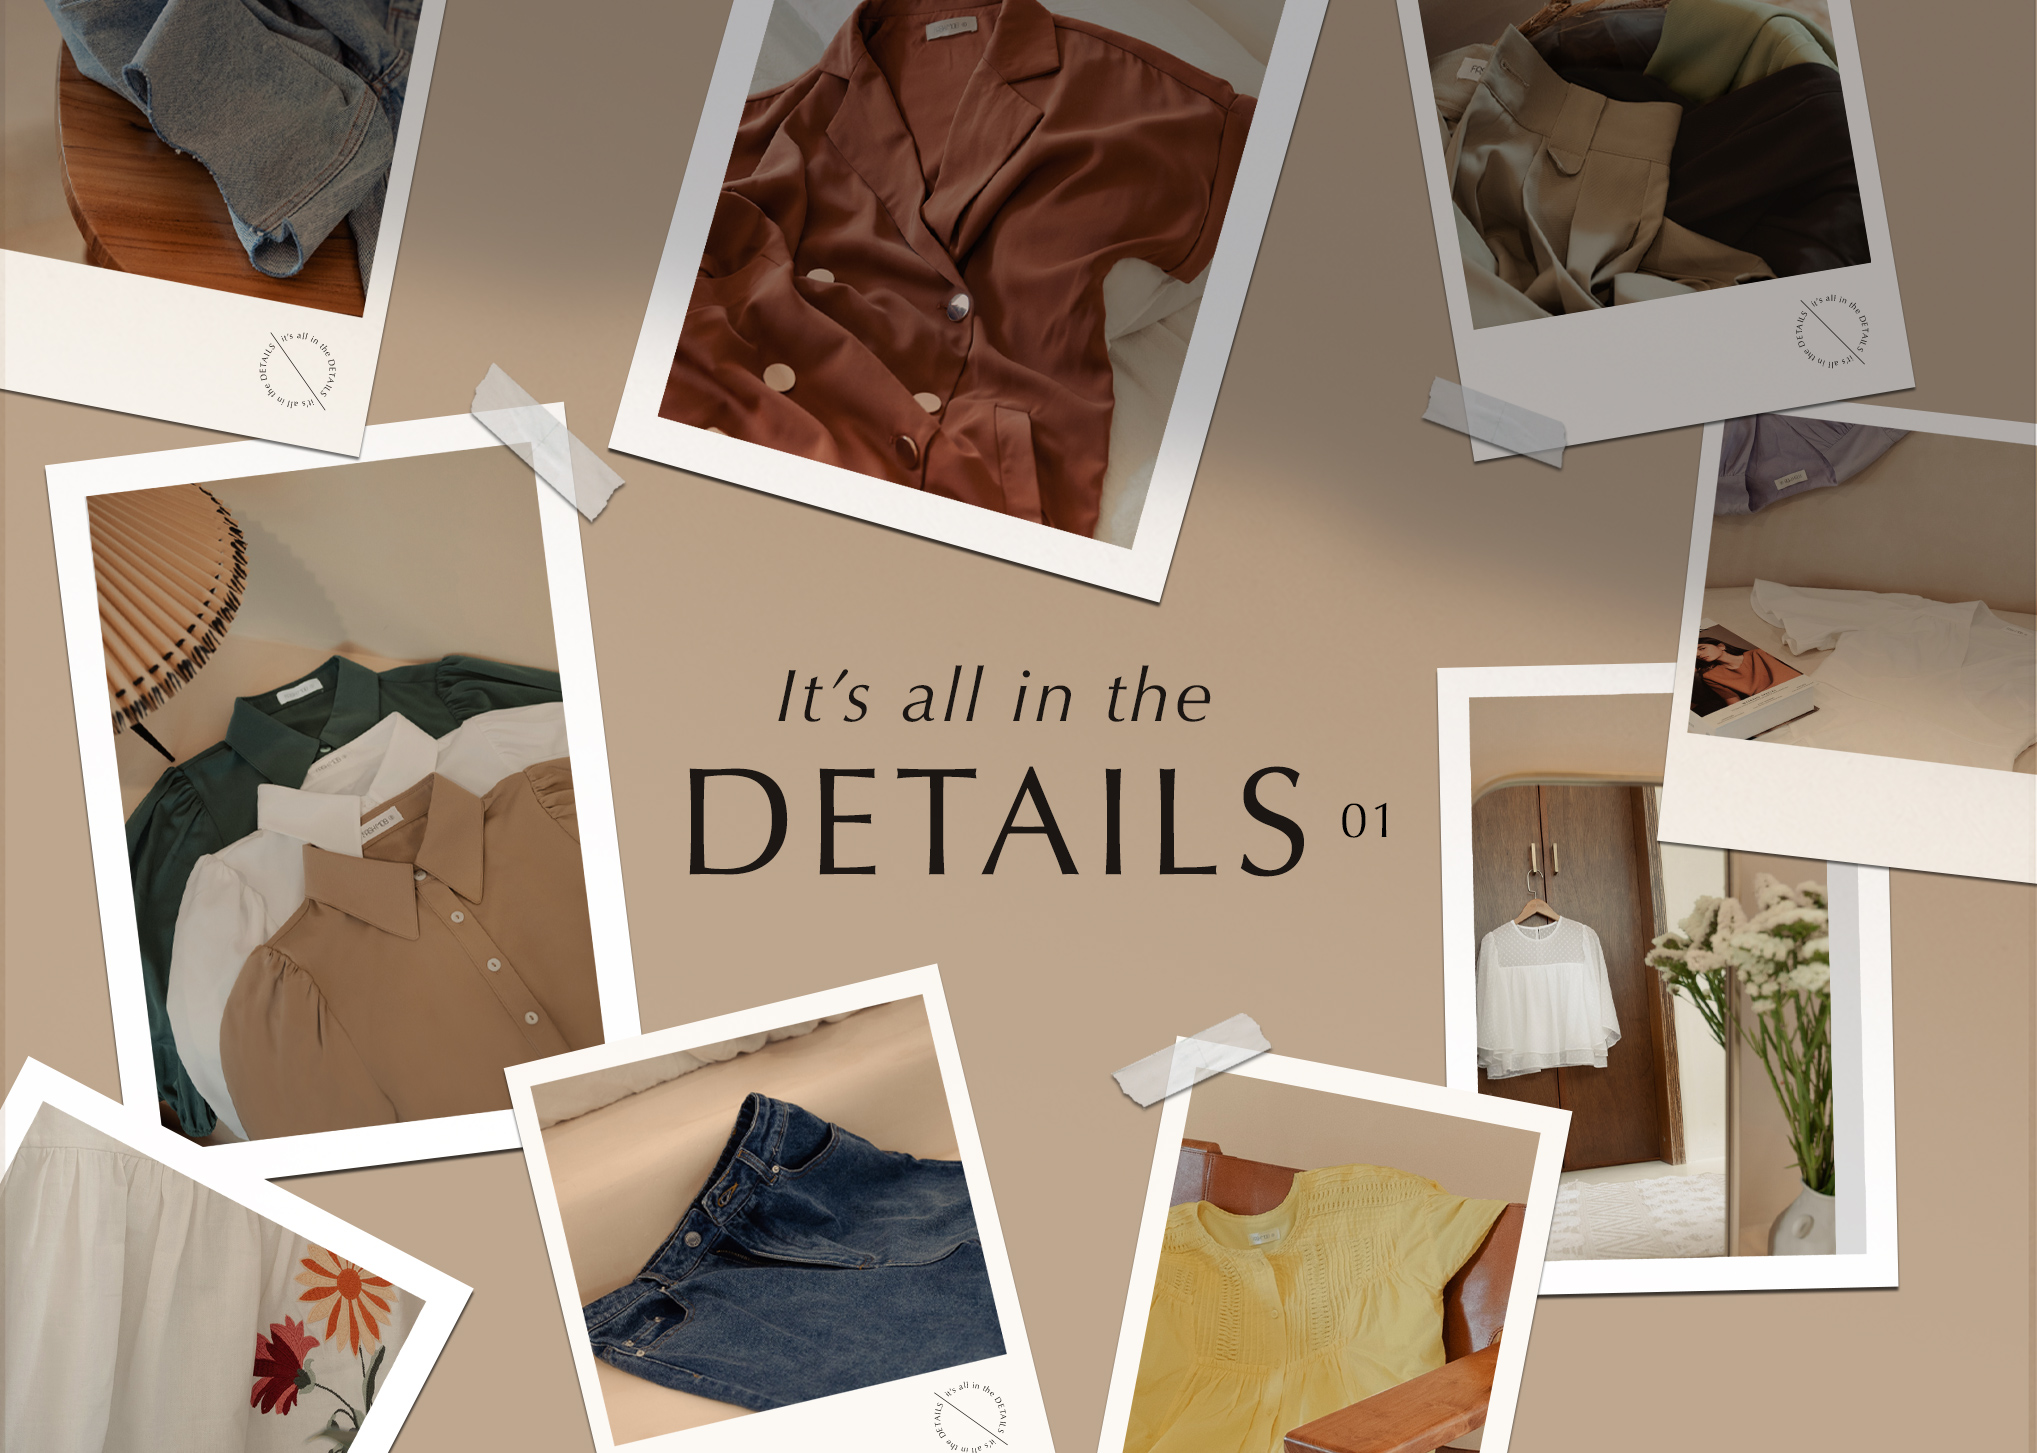 IT'S ALL IN THE DETAILS VOL. 01